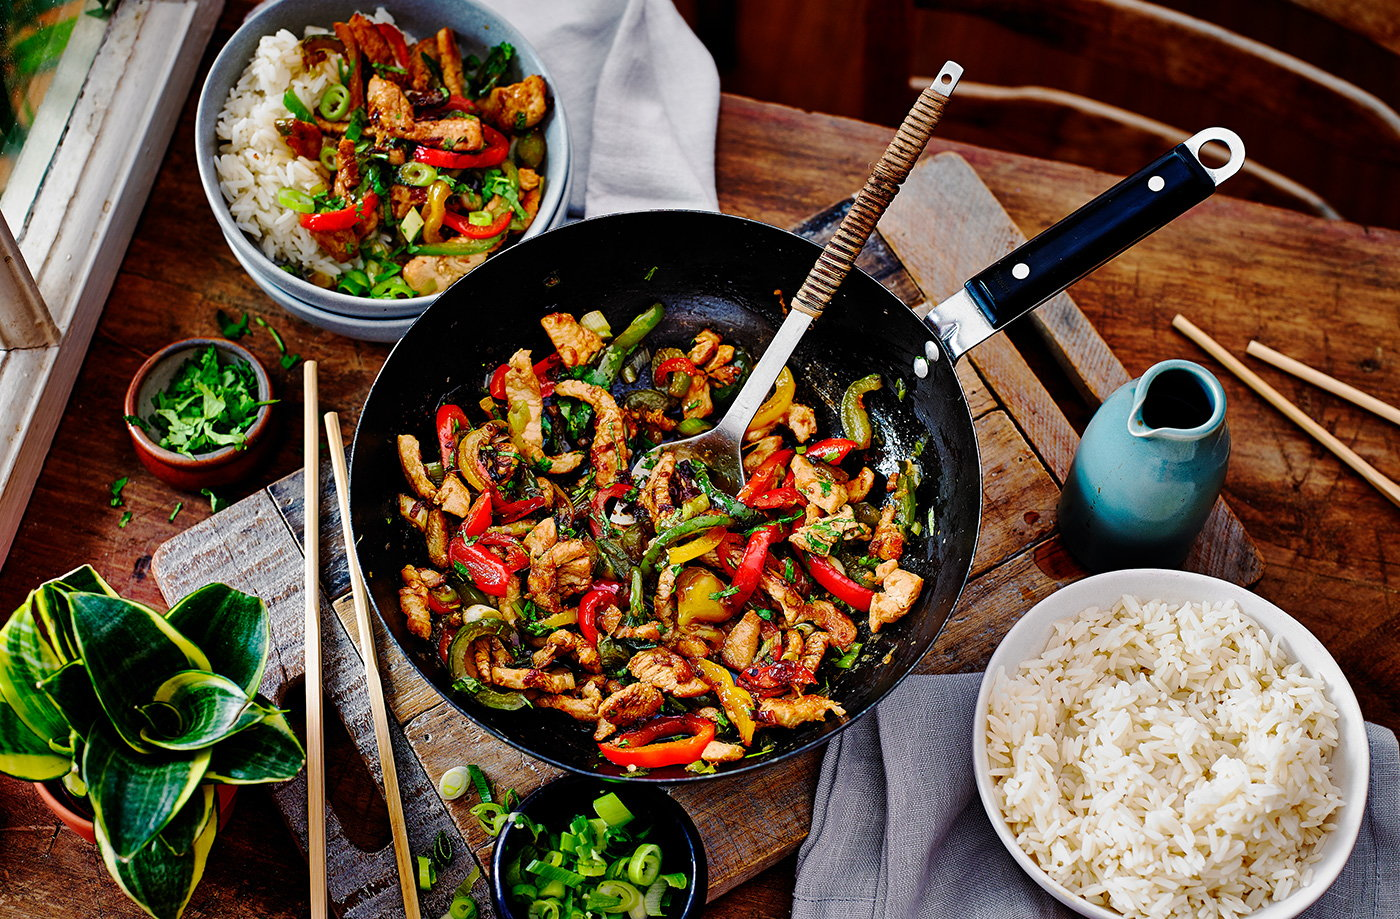 Turkey and peppers stir-fry recipe